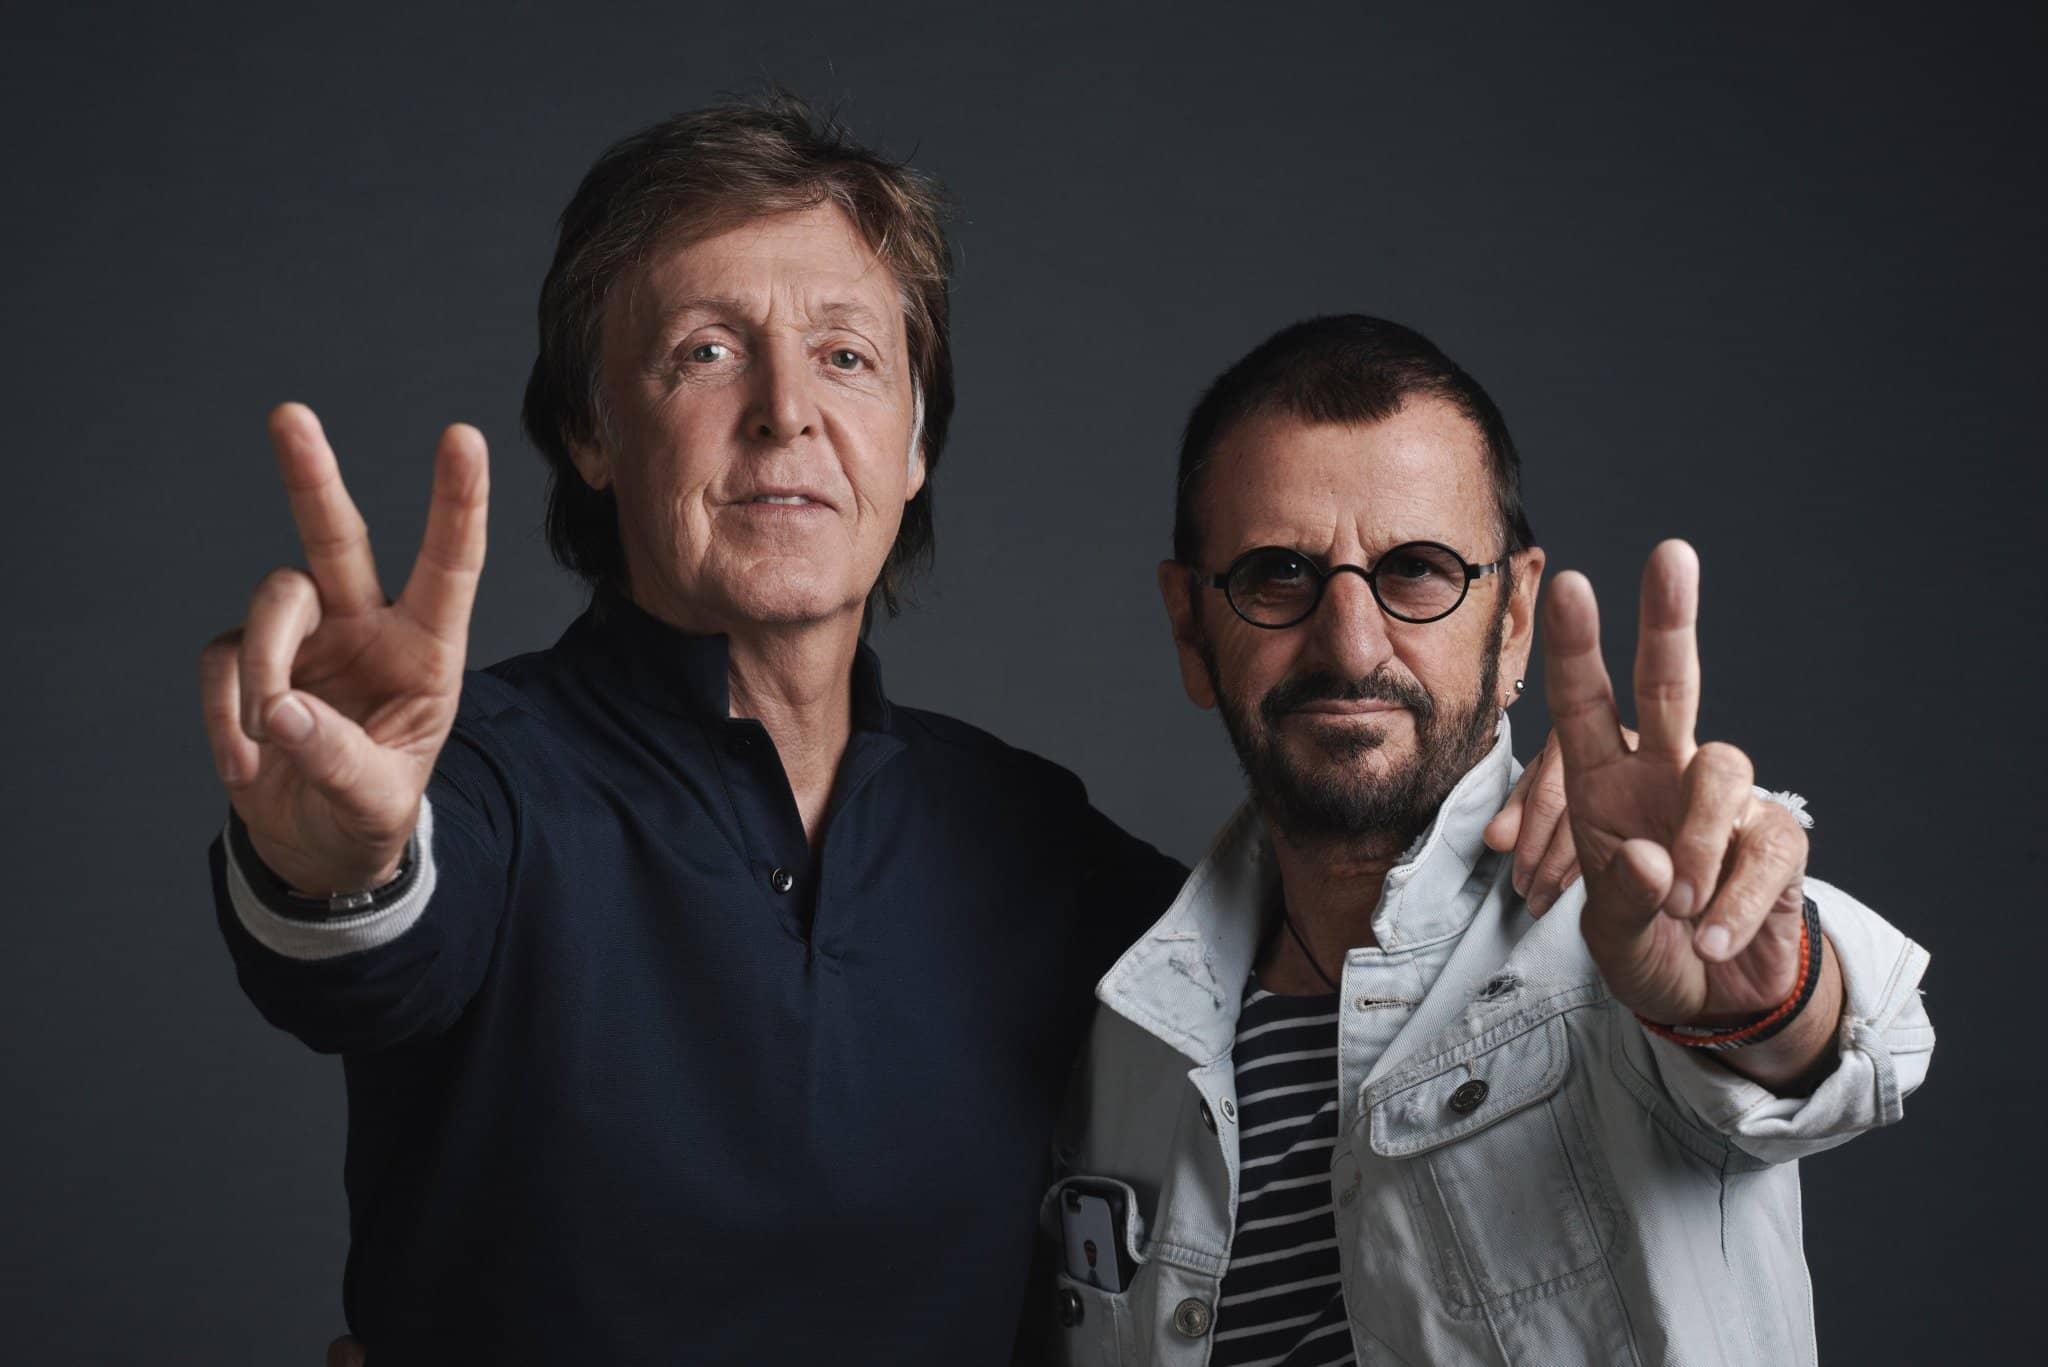 paul mccartney ringo starr angels in disguise the beatles